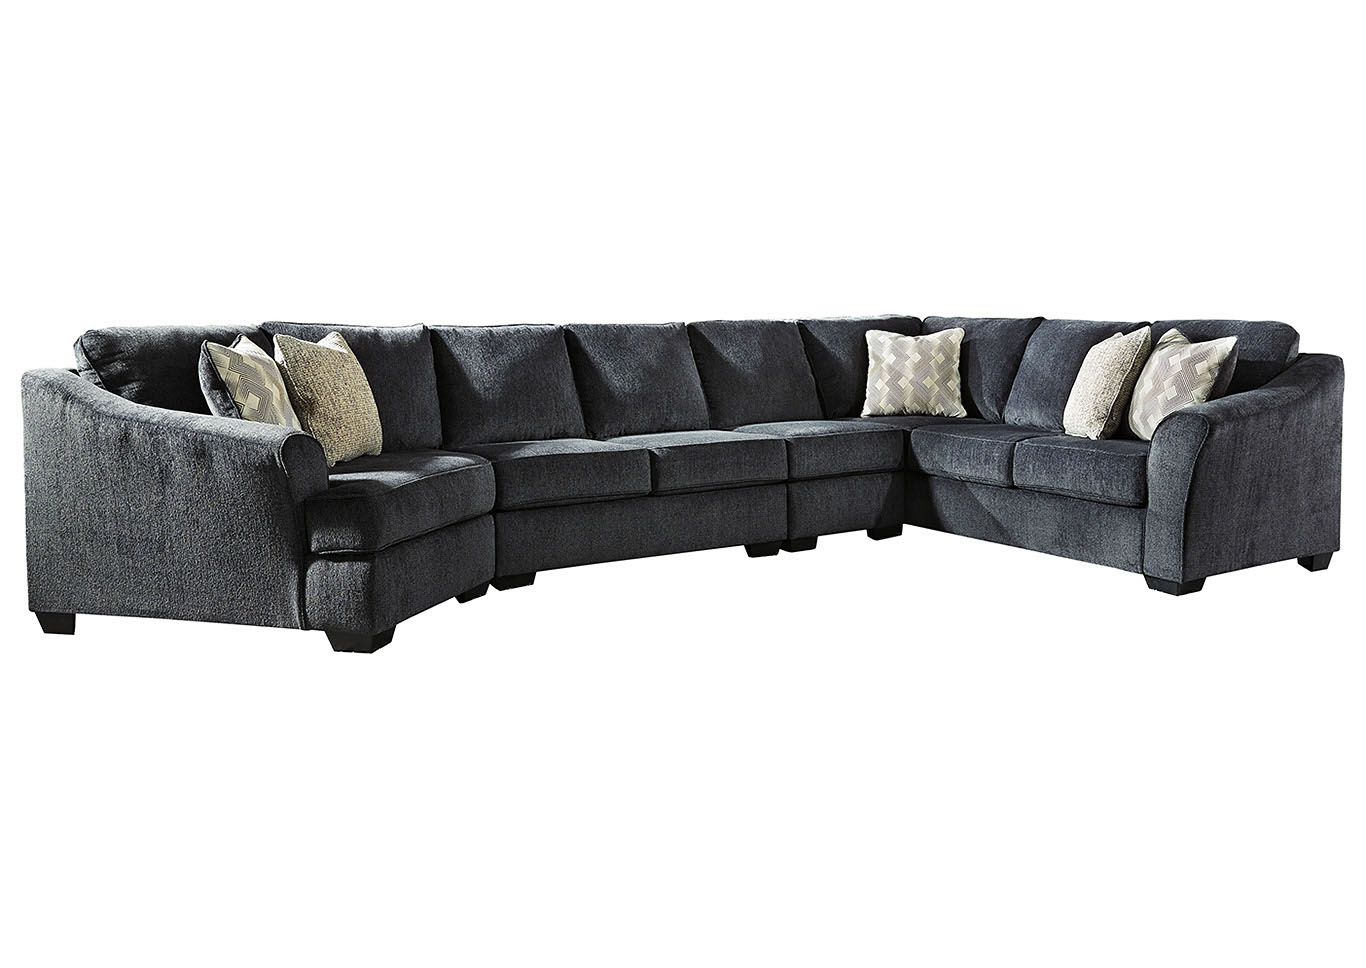 Eltmann Slate LAF Extended Sectional,Signature Design By Ashley